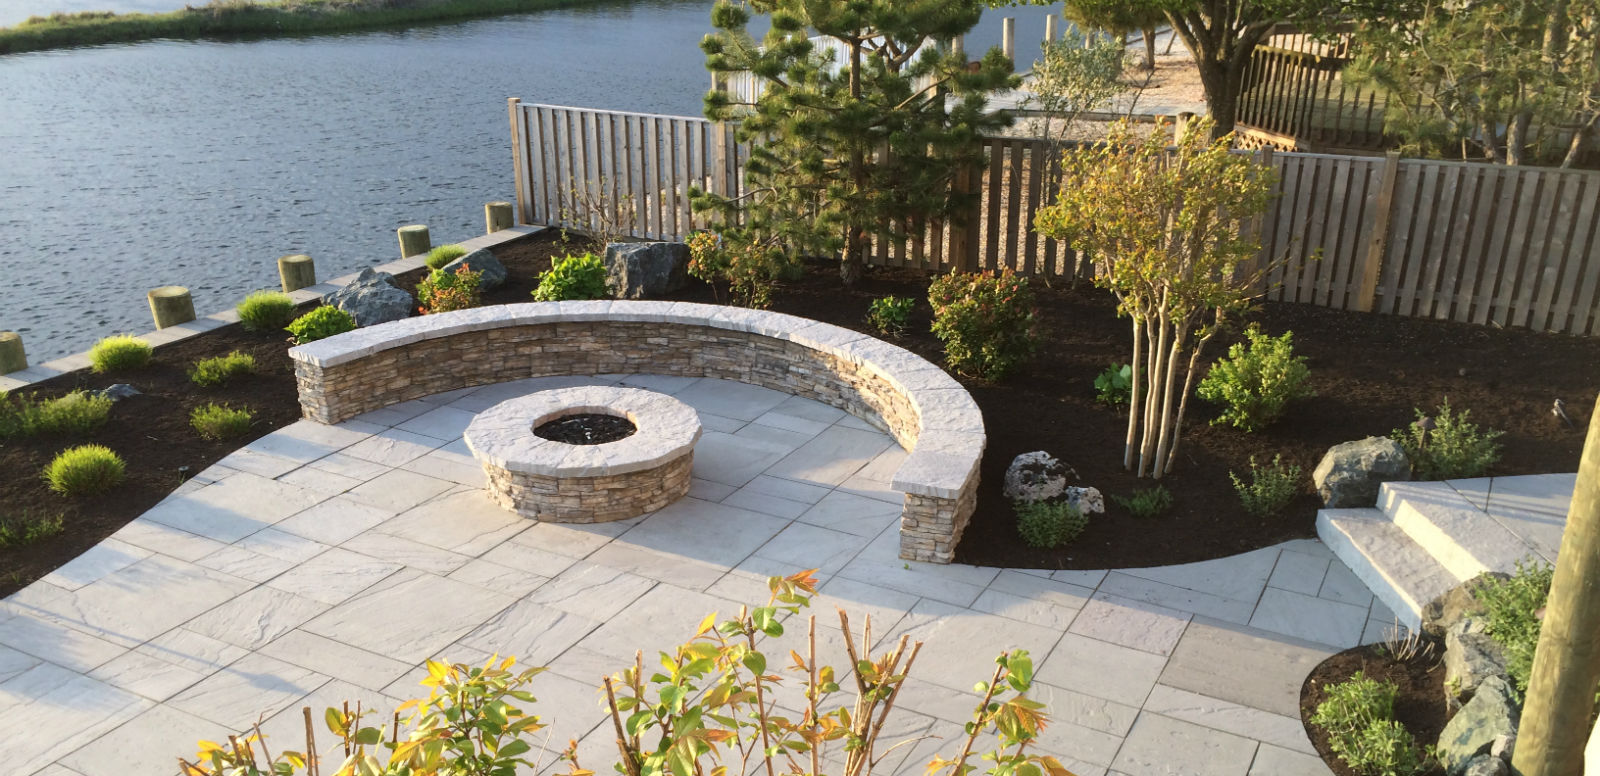 Landscape Design can Enhance Realtor Services